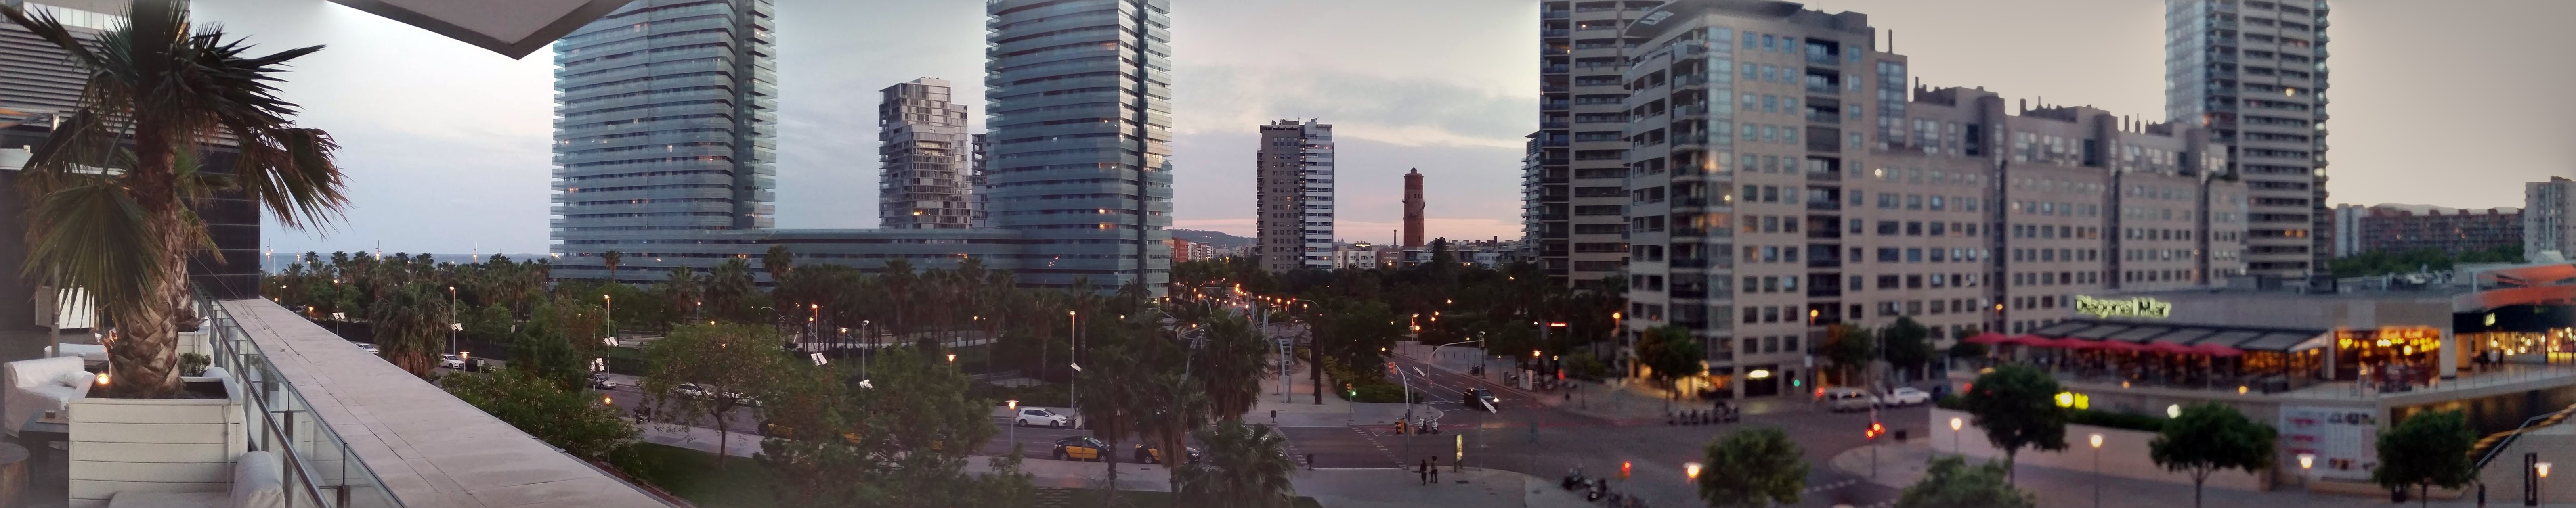 IBIS 2016 was held in beautiful Barcelona, Spain.